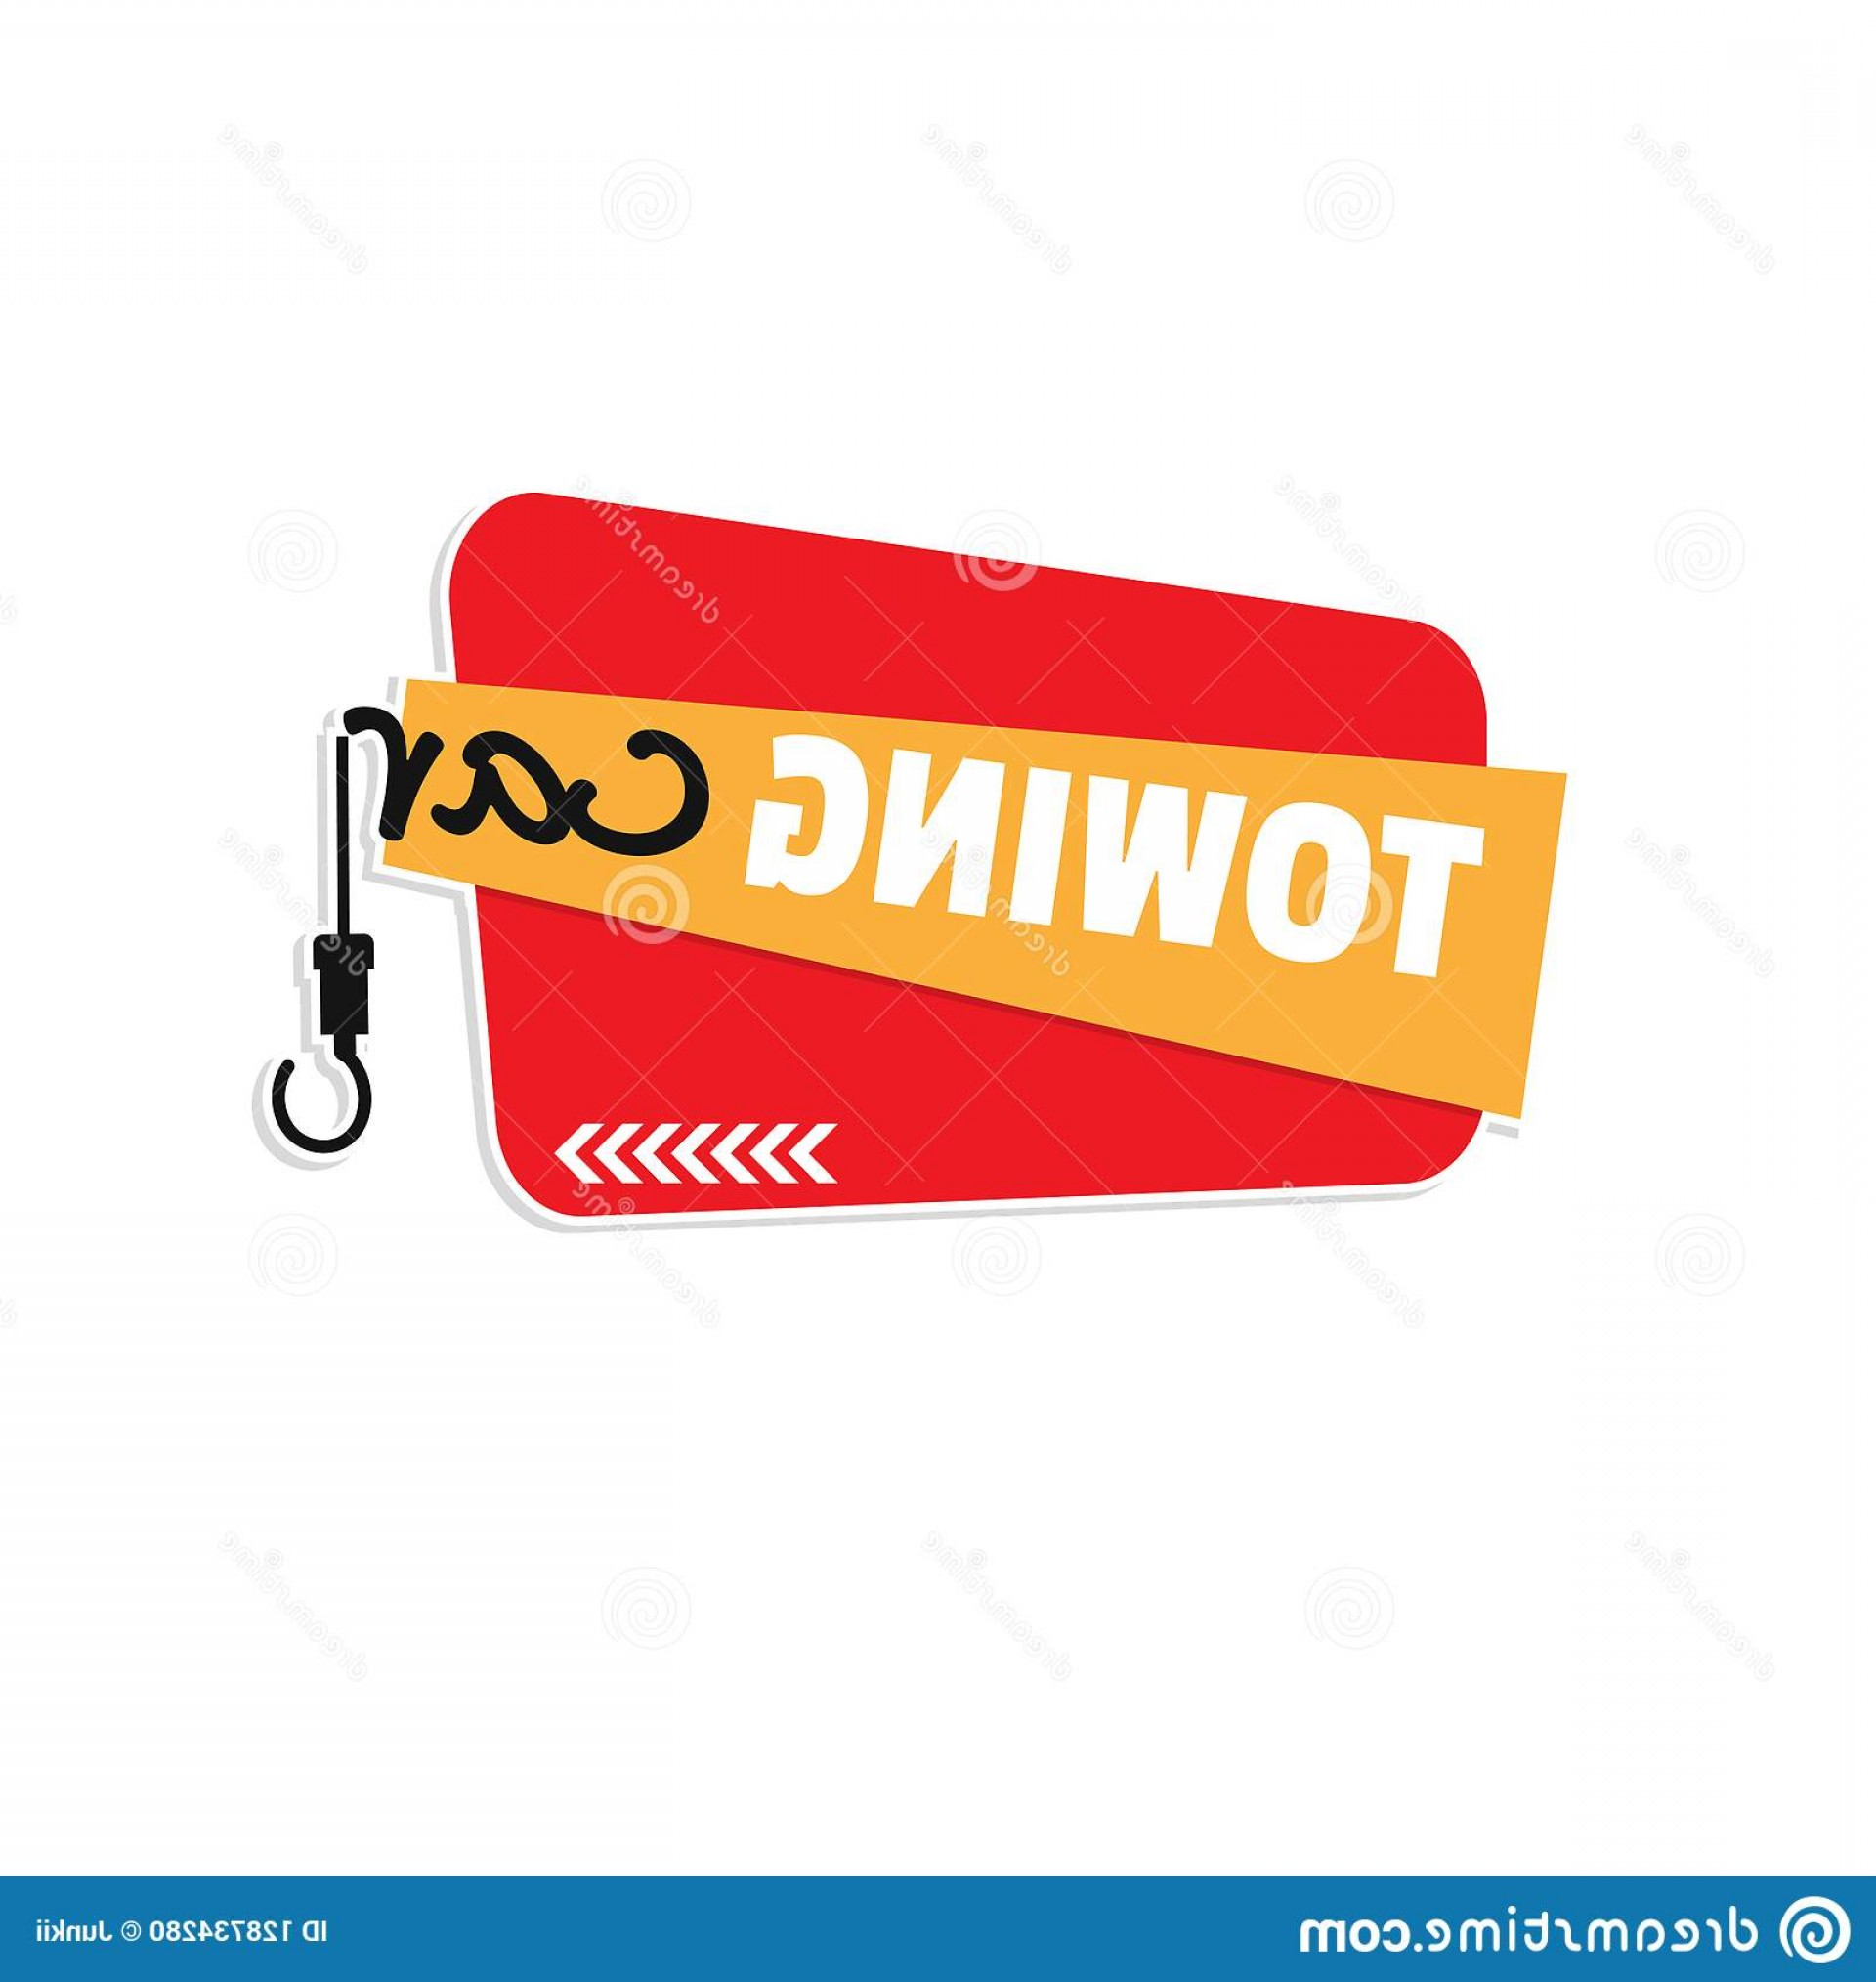 Car Tow Hook Vector: Towing Car Service Flat Background Vector Design Hook Red Image